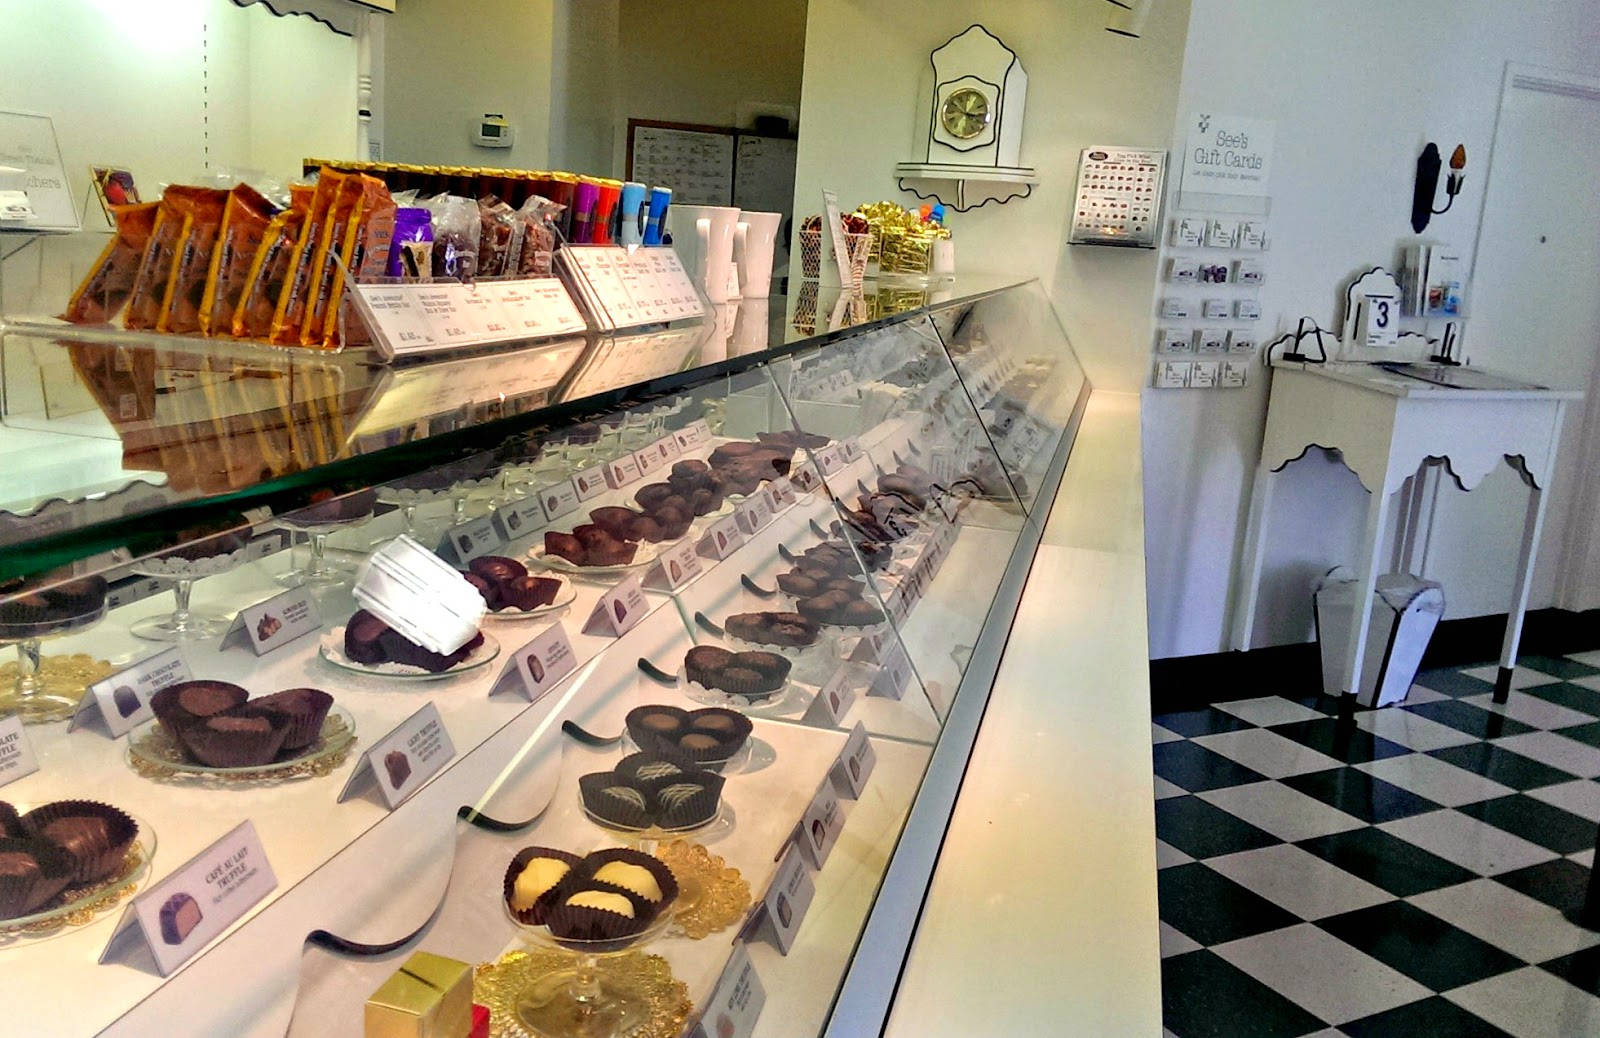 See's candies and chocolate